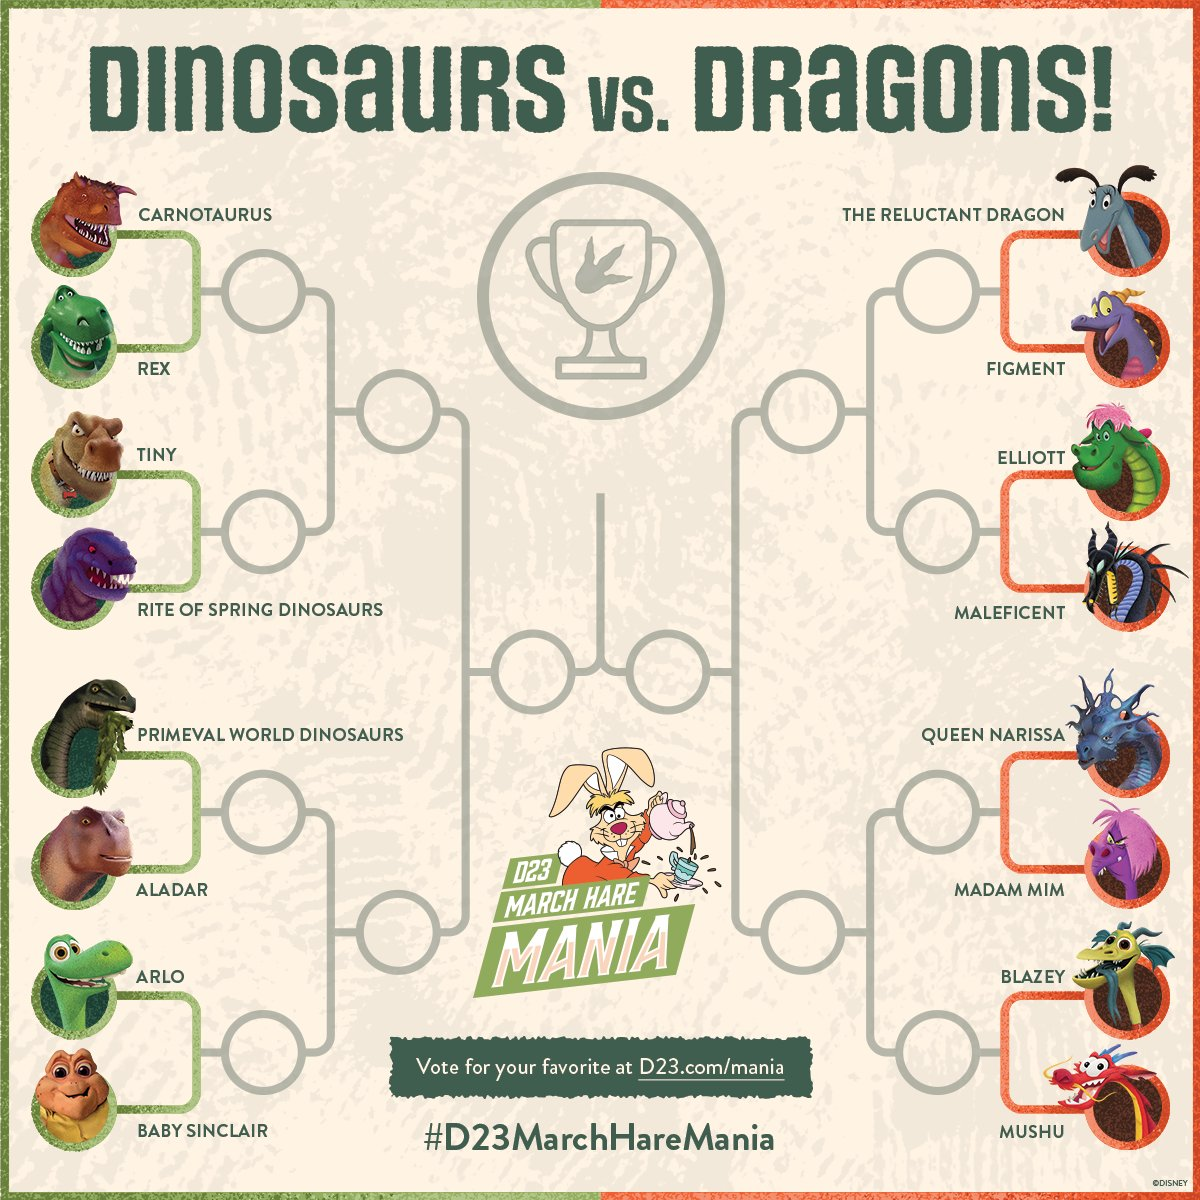 Vote for your favorite Disney dragons (and dinos!) in the #D23MarchHareMania bracket: